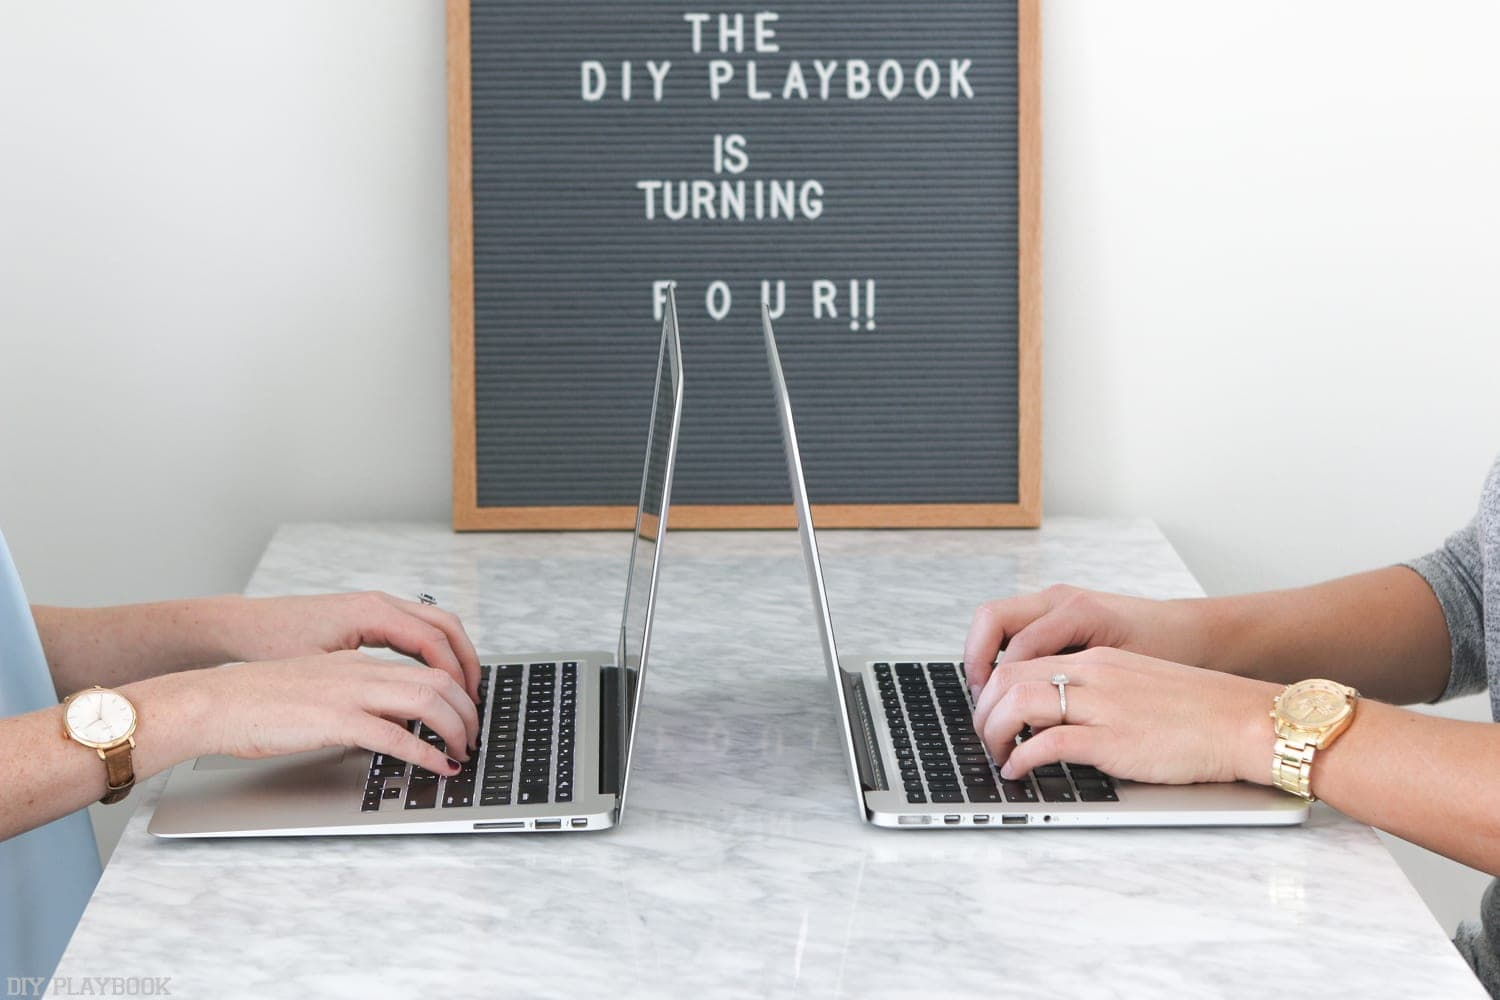 DIY_Playbook-4th-birthday-bridget-casey-3